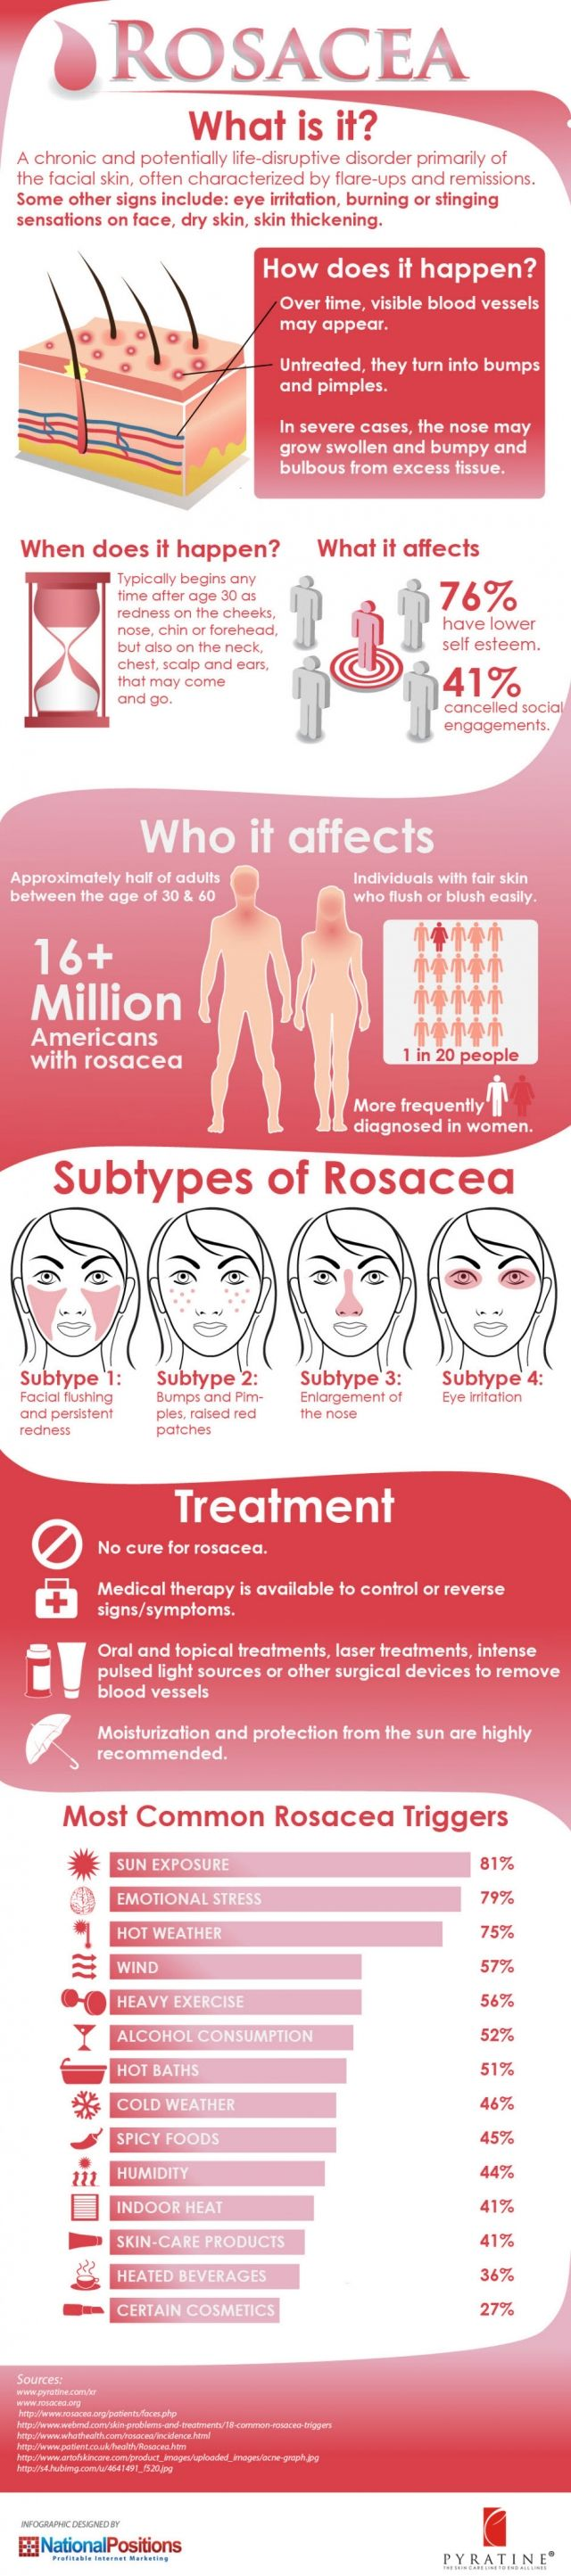 What is Acne Rosacea PyratineXR?